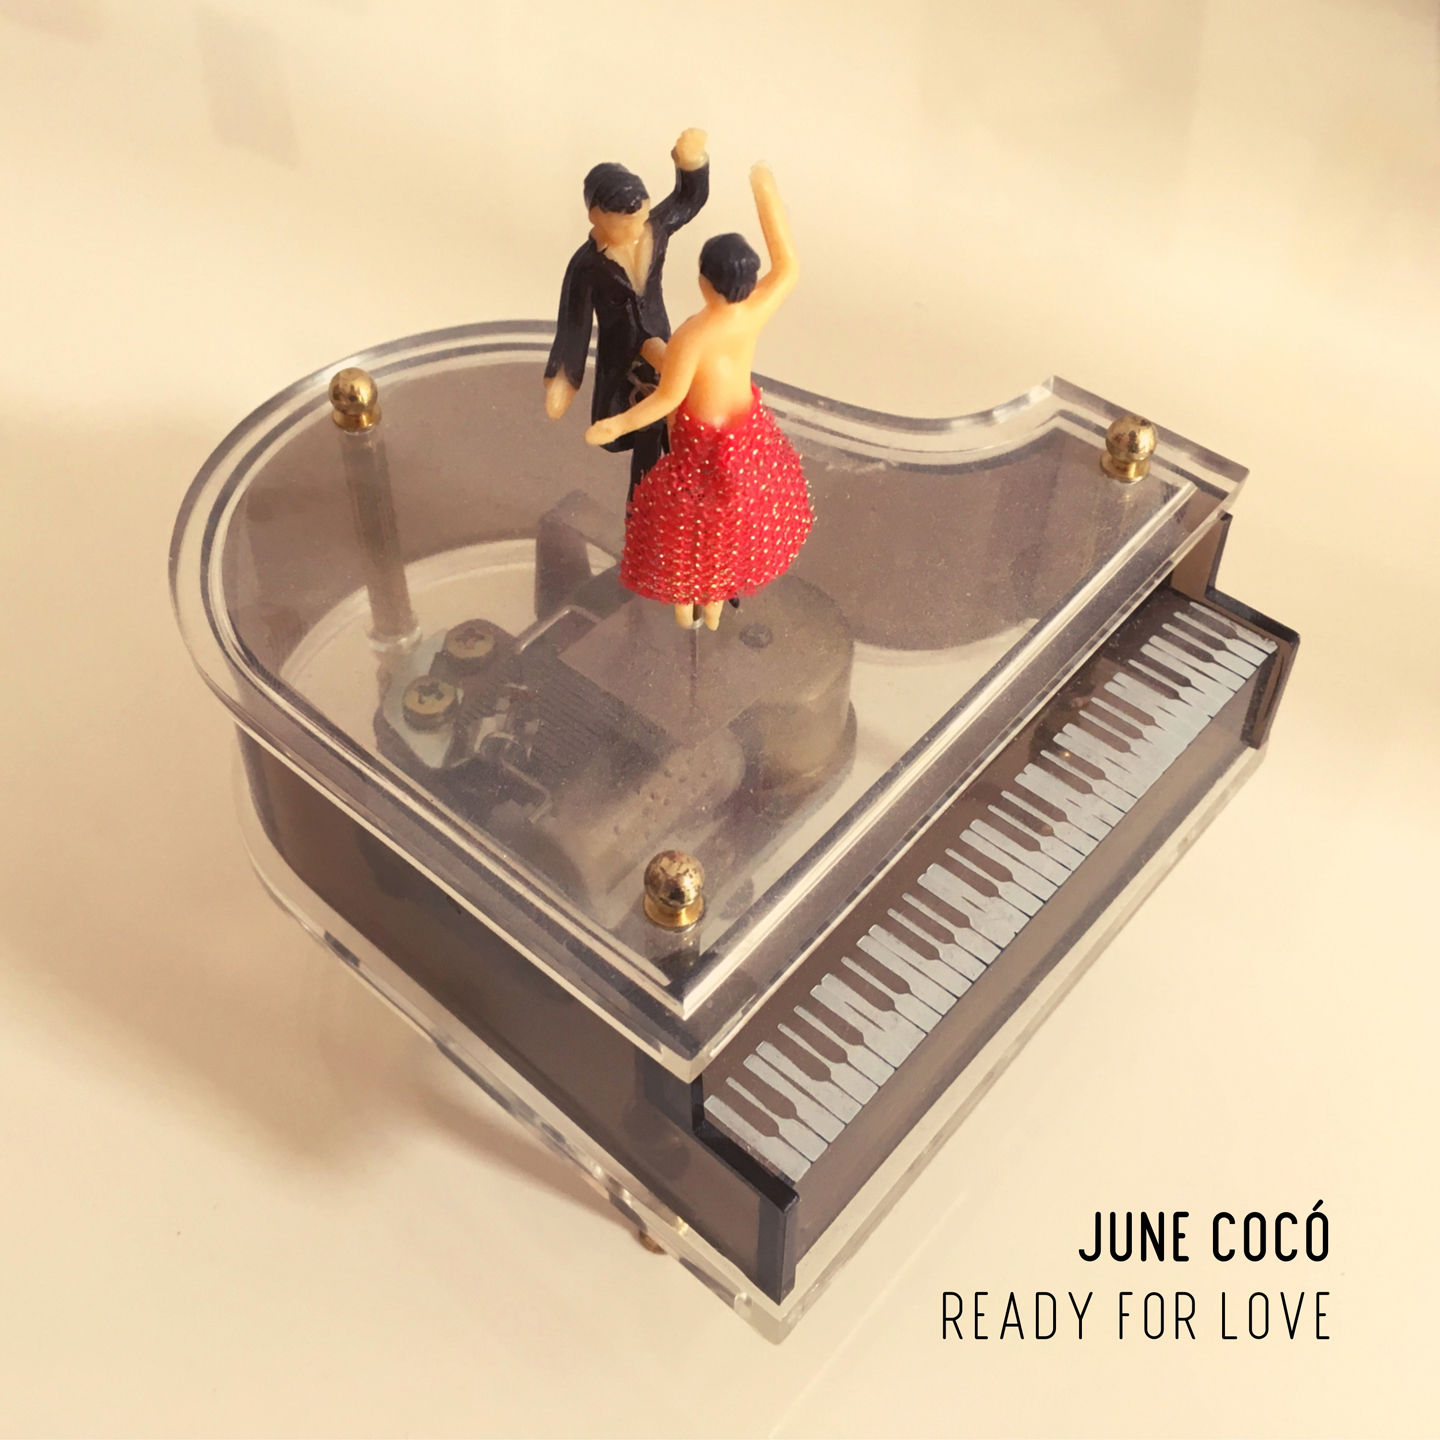 June Coco - Ready for Love